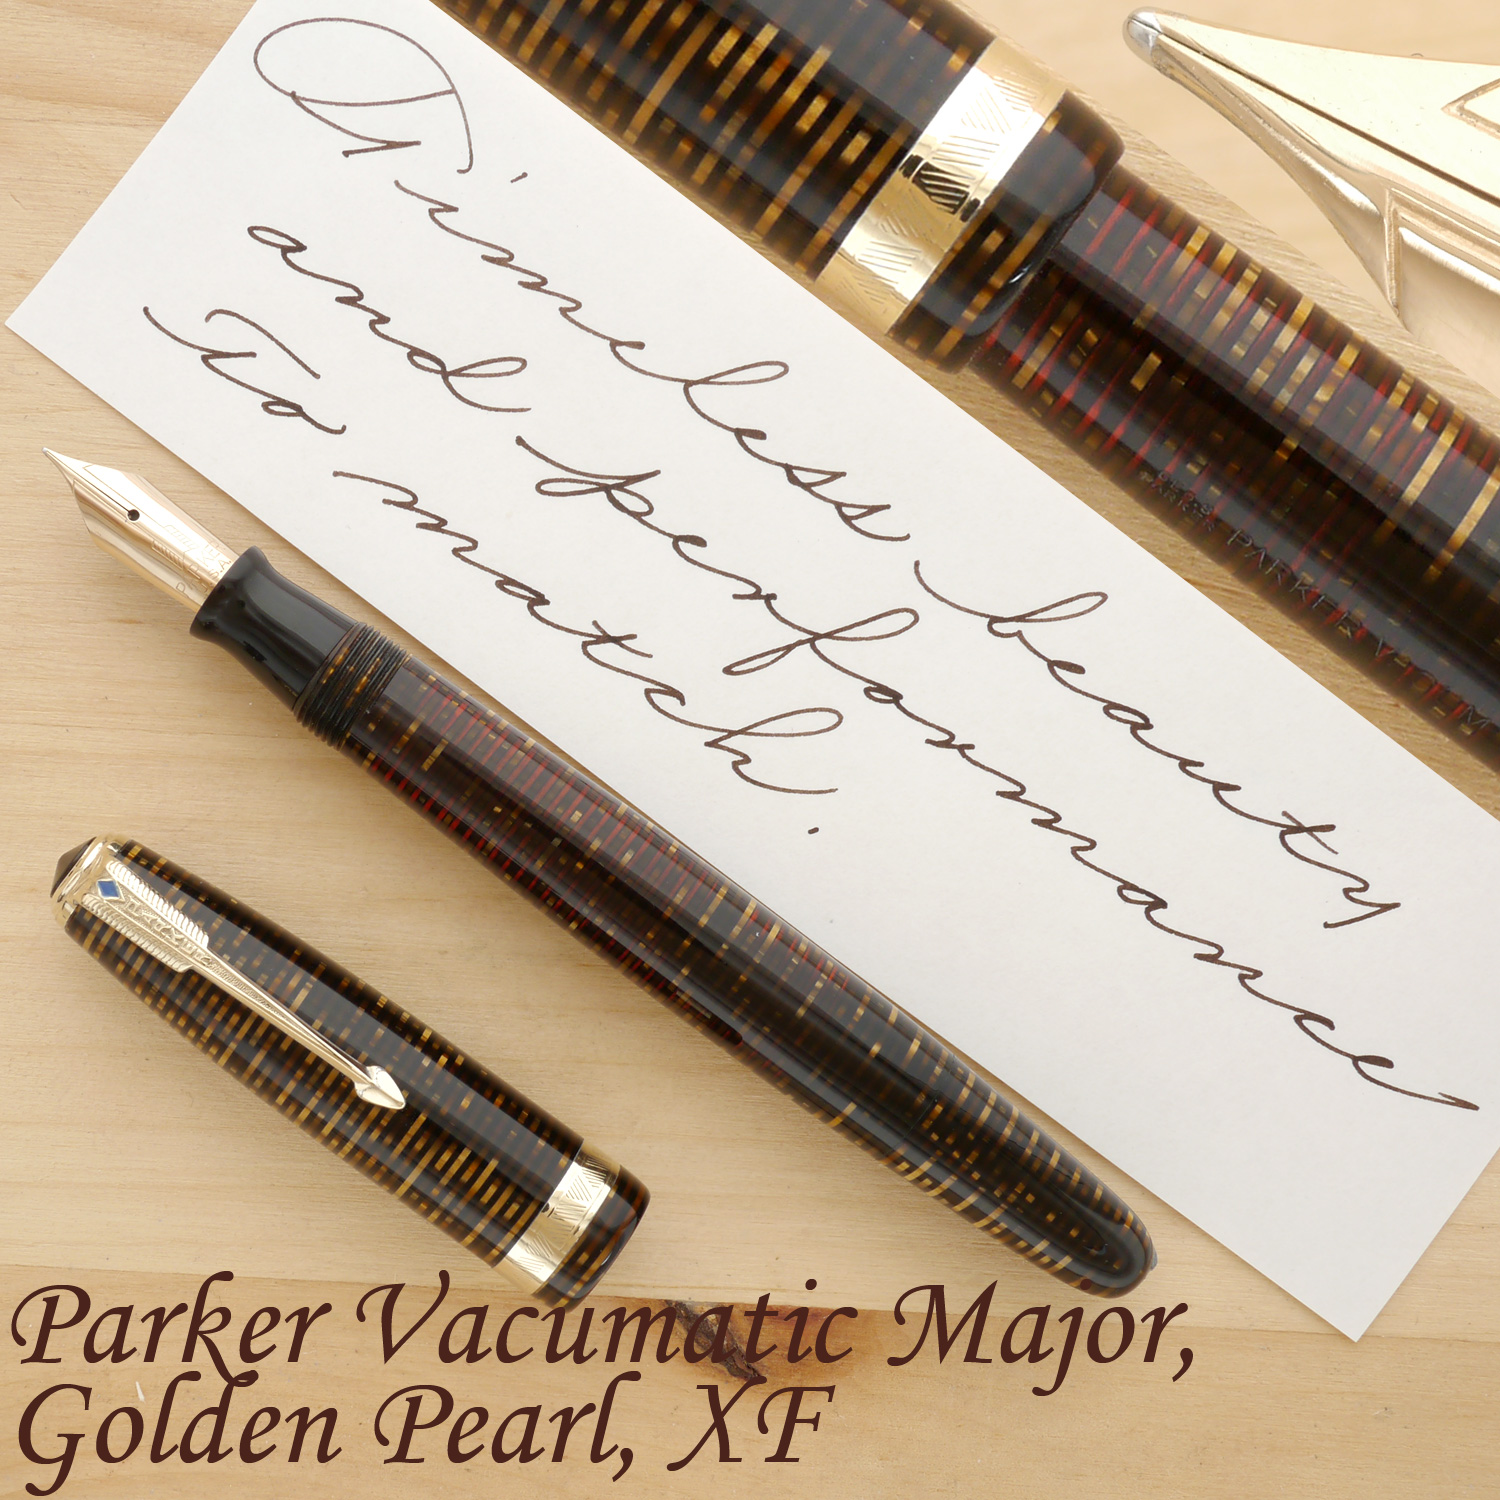 Parker Vacumatic Major Fountain Pen, Golden Pearl, XF, uncapped